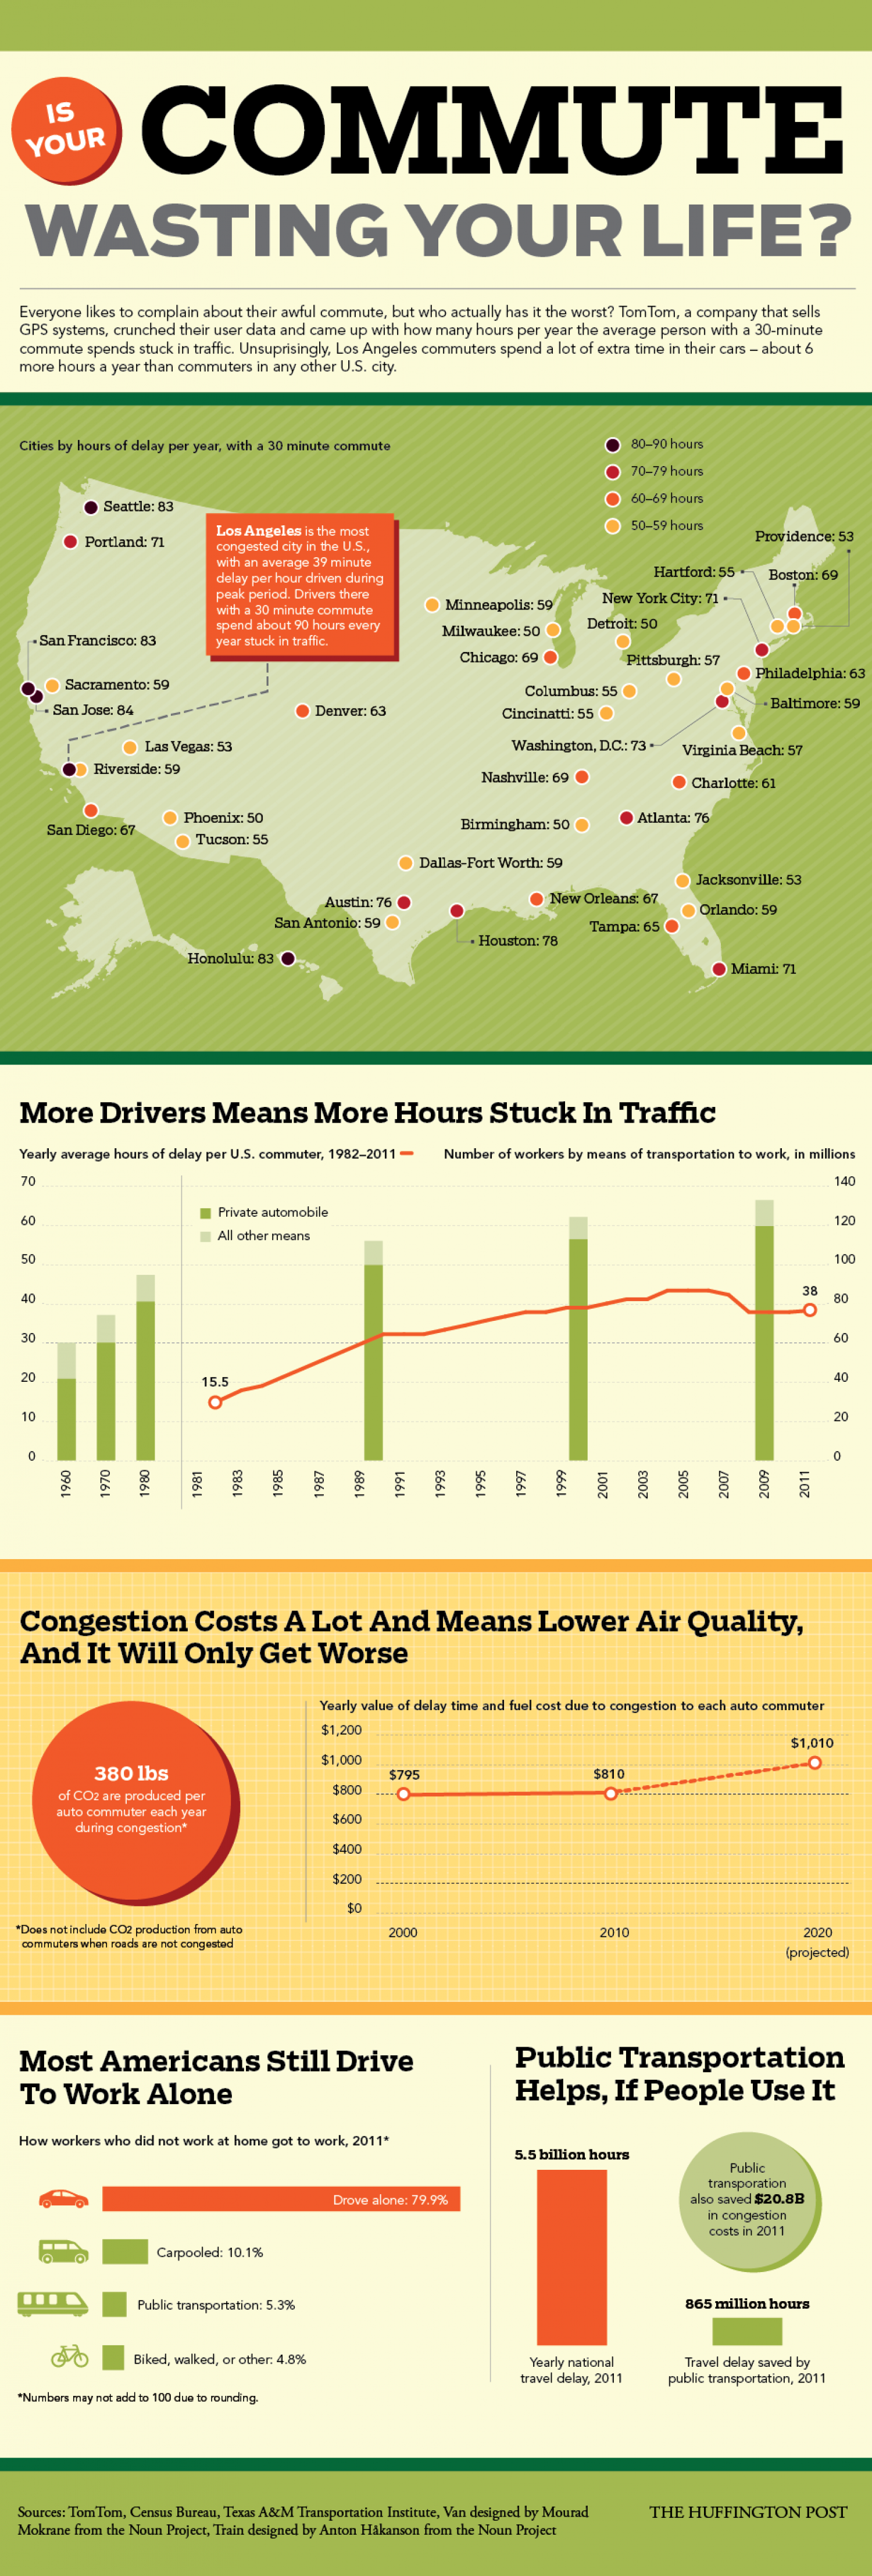 Is Your Commute Wasting Your Life? Infographic